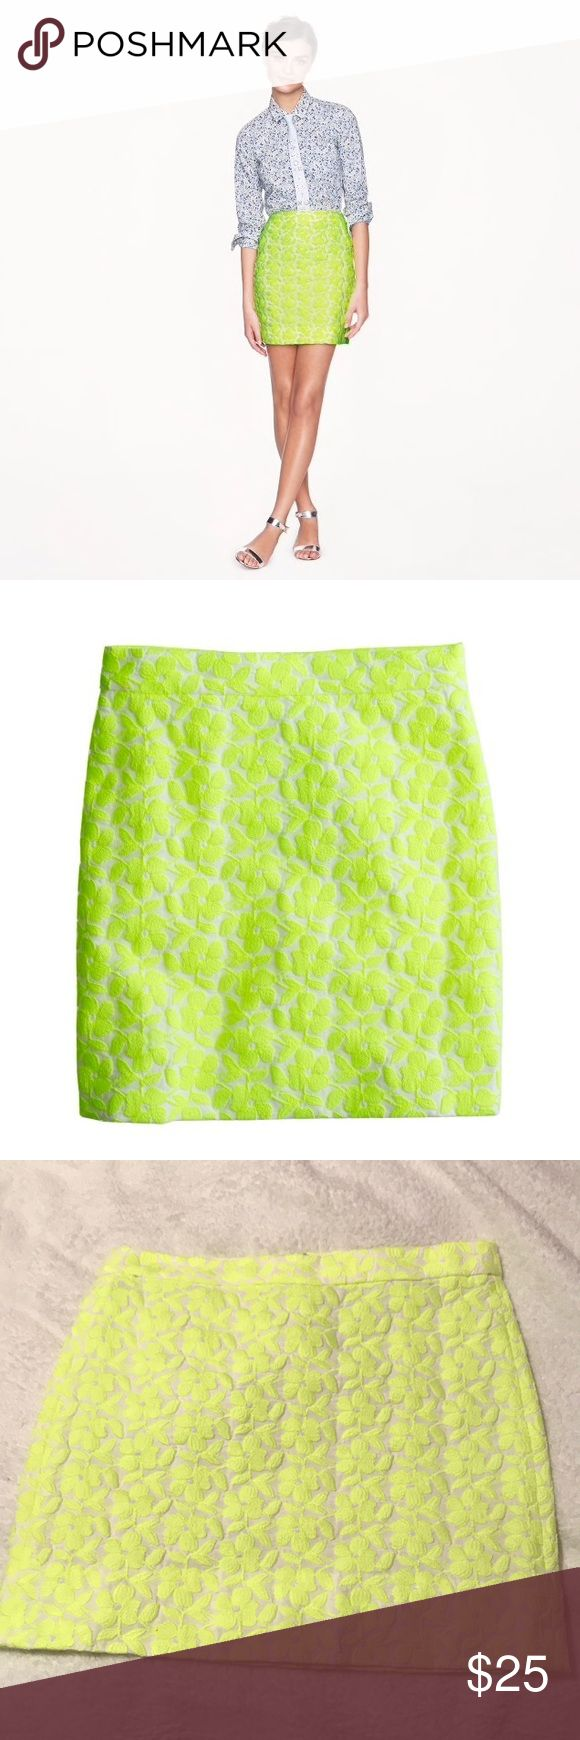 "J.Crew postage stamp mini in neon floral J.Crew postage stamp mini skirt in embroidered neon floral. Sits above hip, falls above knee, 16.5"" long according to site. Dry clean only. 50% cotton, 50% polyester, lining 50% polyester. Back zipper and hook at top. Color is a very bright neon yellow, pictures do not do it justice! J. Crew Skirts Mini"